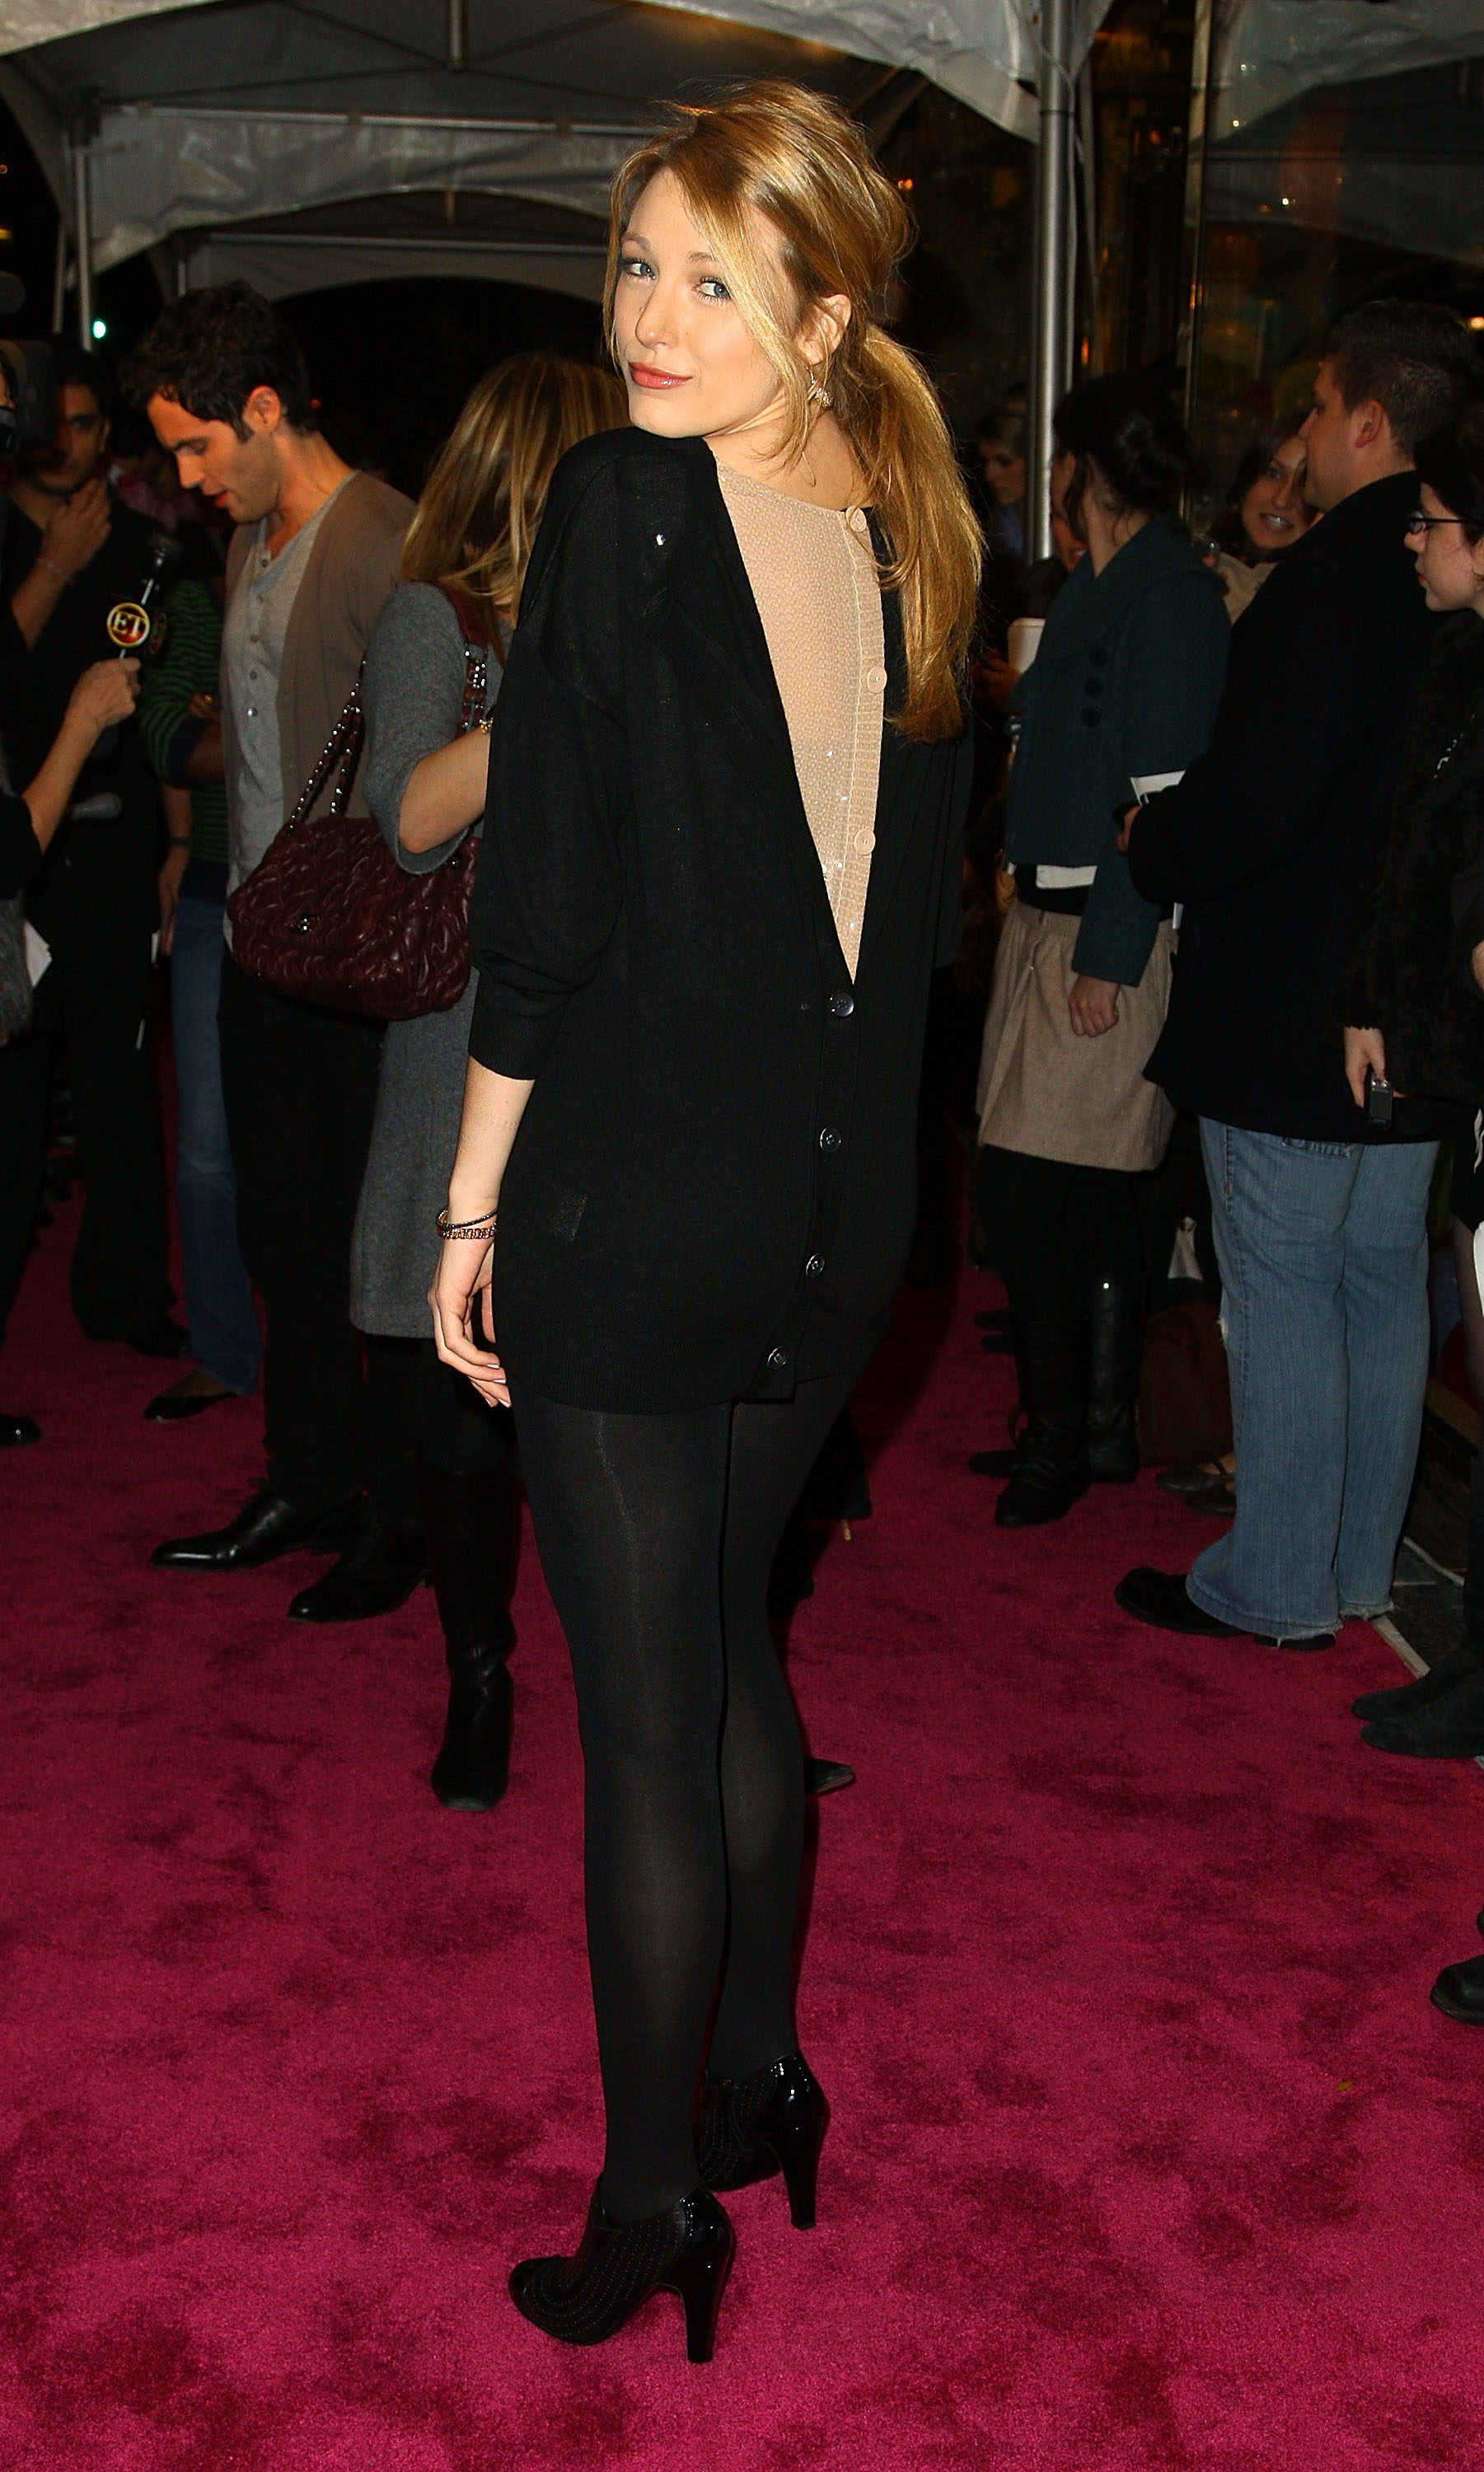 59122_Celebutopia-Blake_Lively-Opening_party_for_Juicy_Couture88s_5th_Avenue_flagship_store-05_122_1024lo.jpg